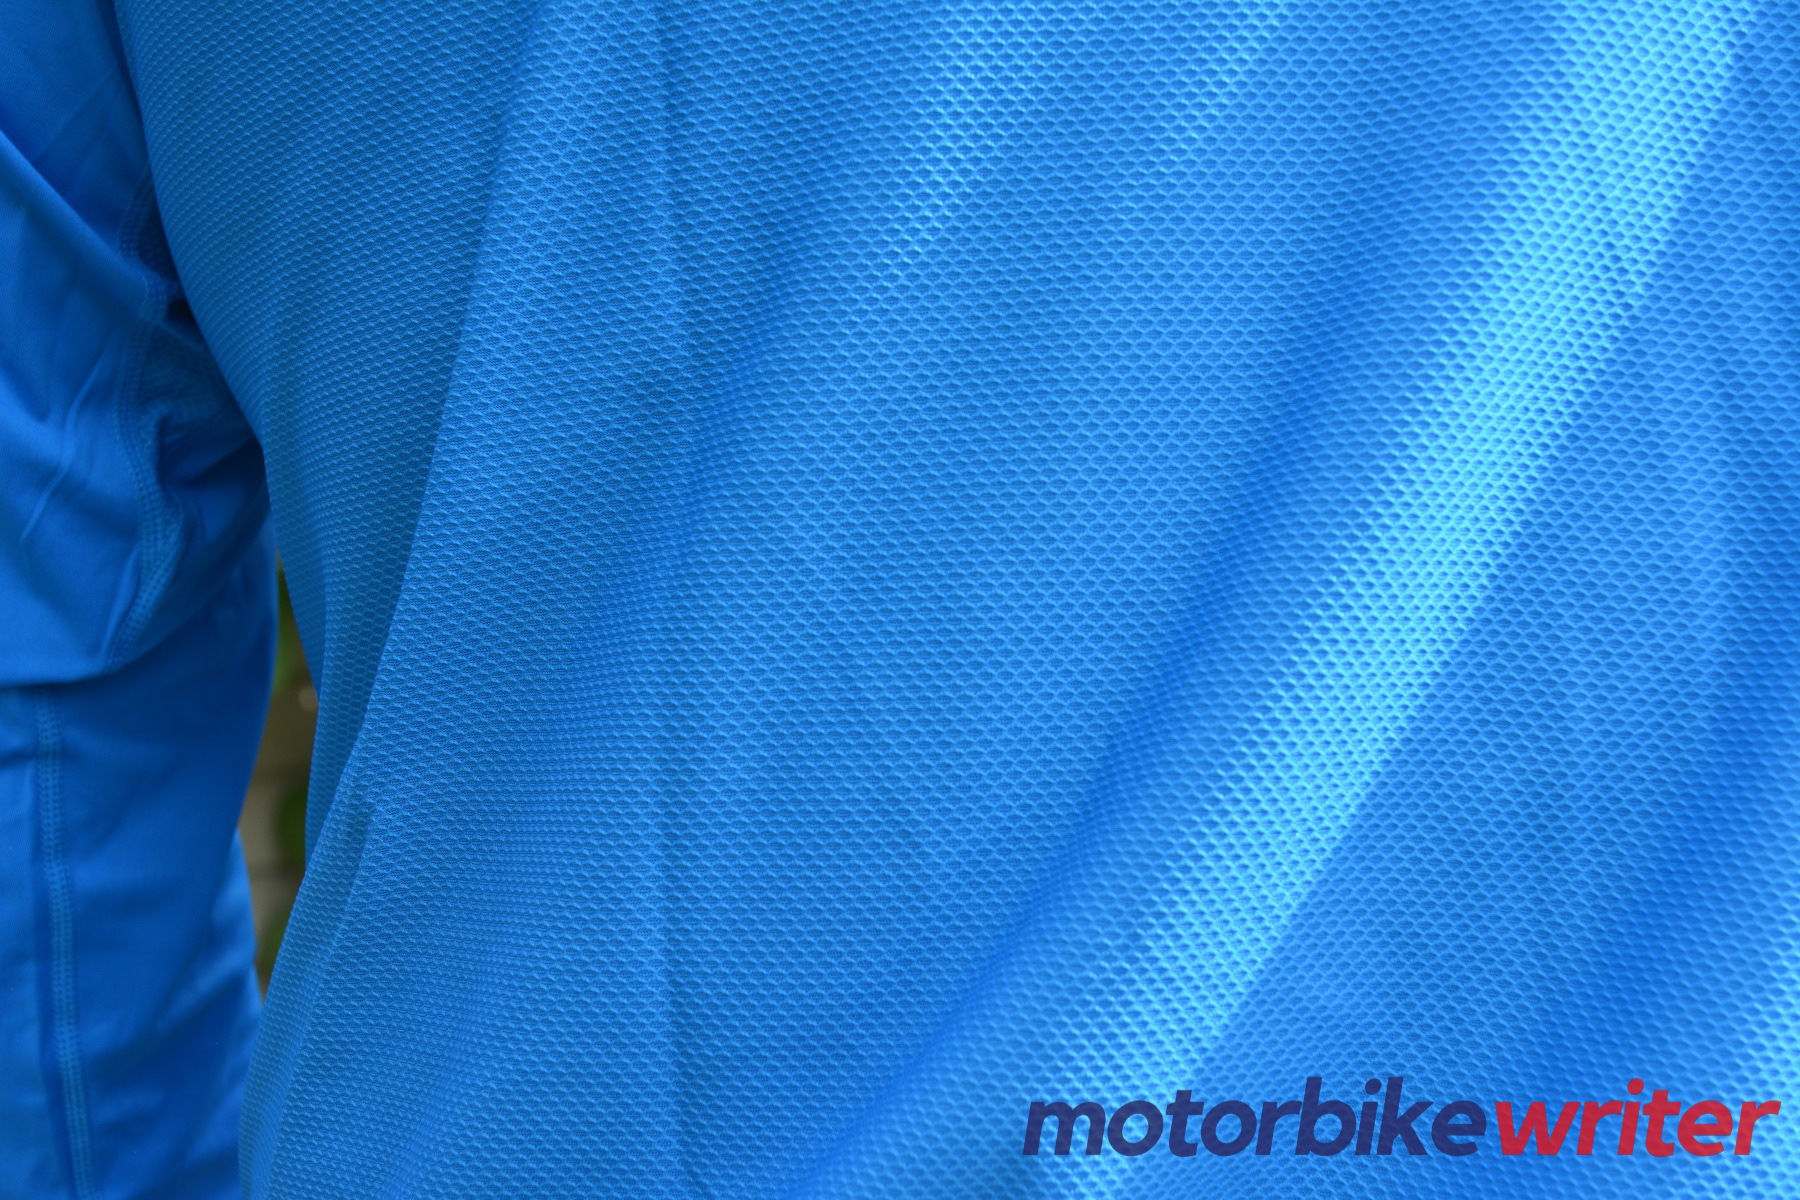 Close-up rear view of blue Fieldsheer Mobile Cooling Long Sleeve shirt